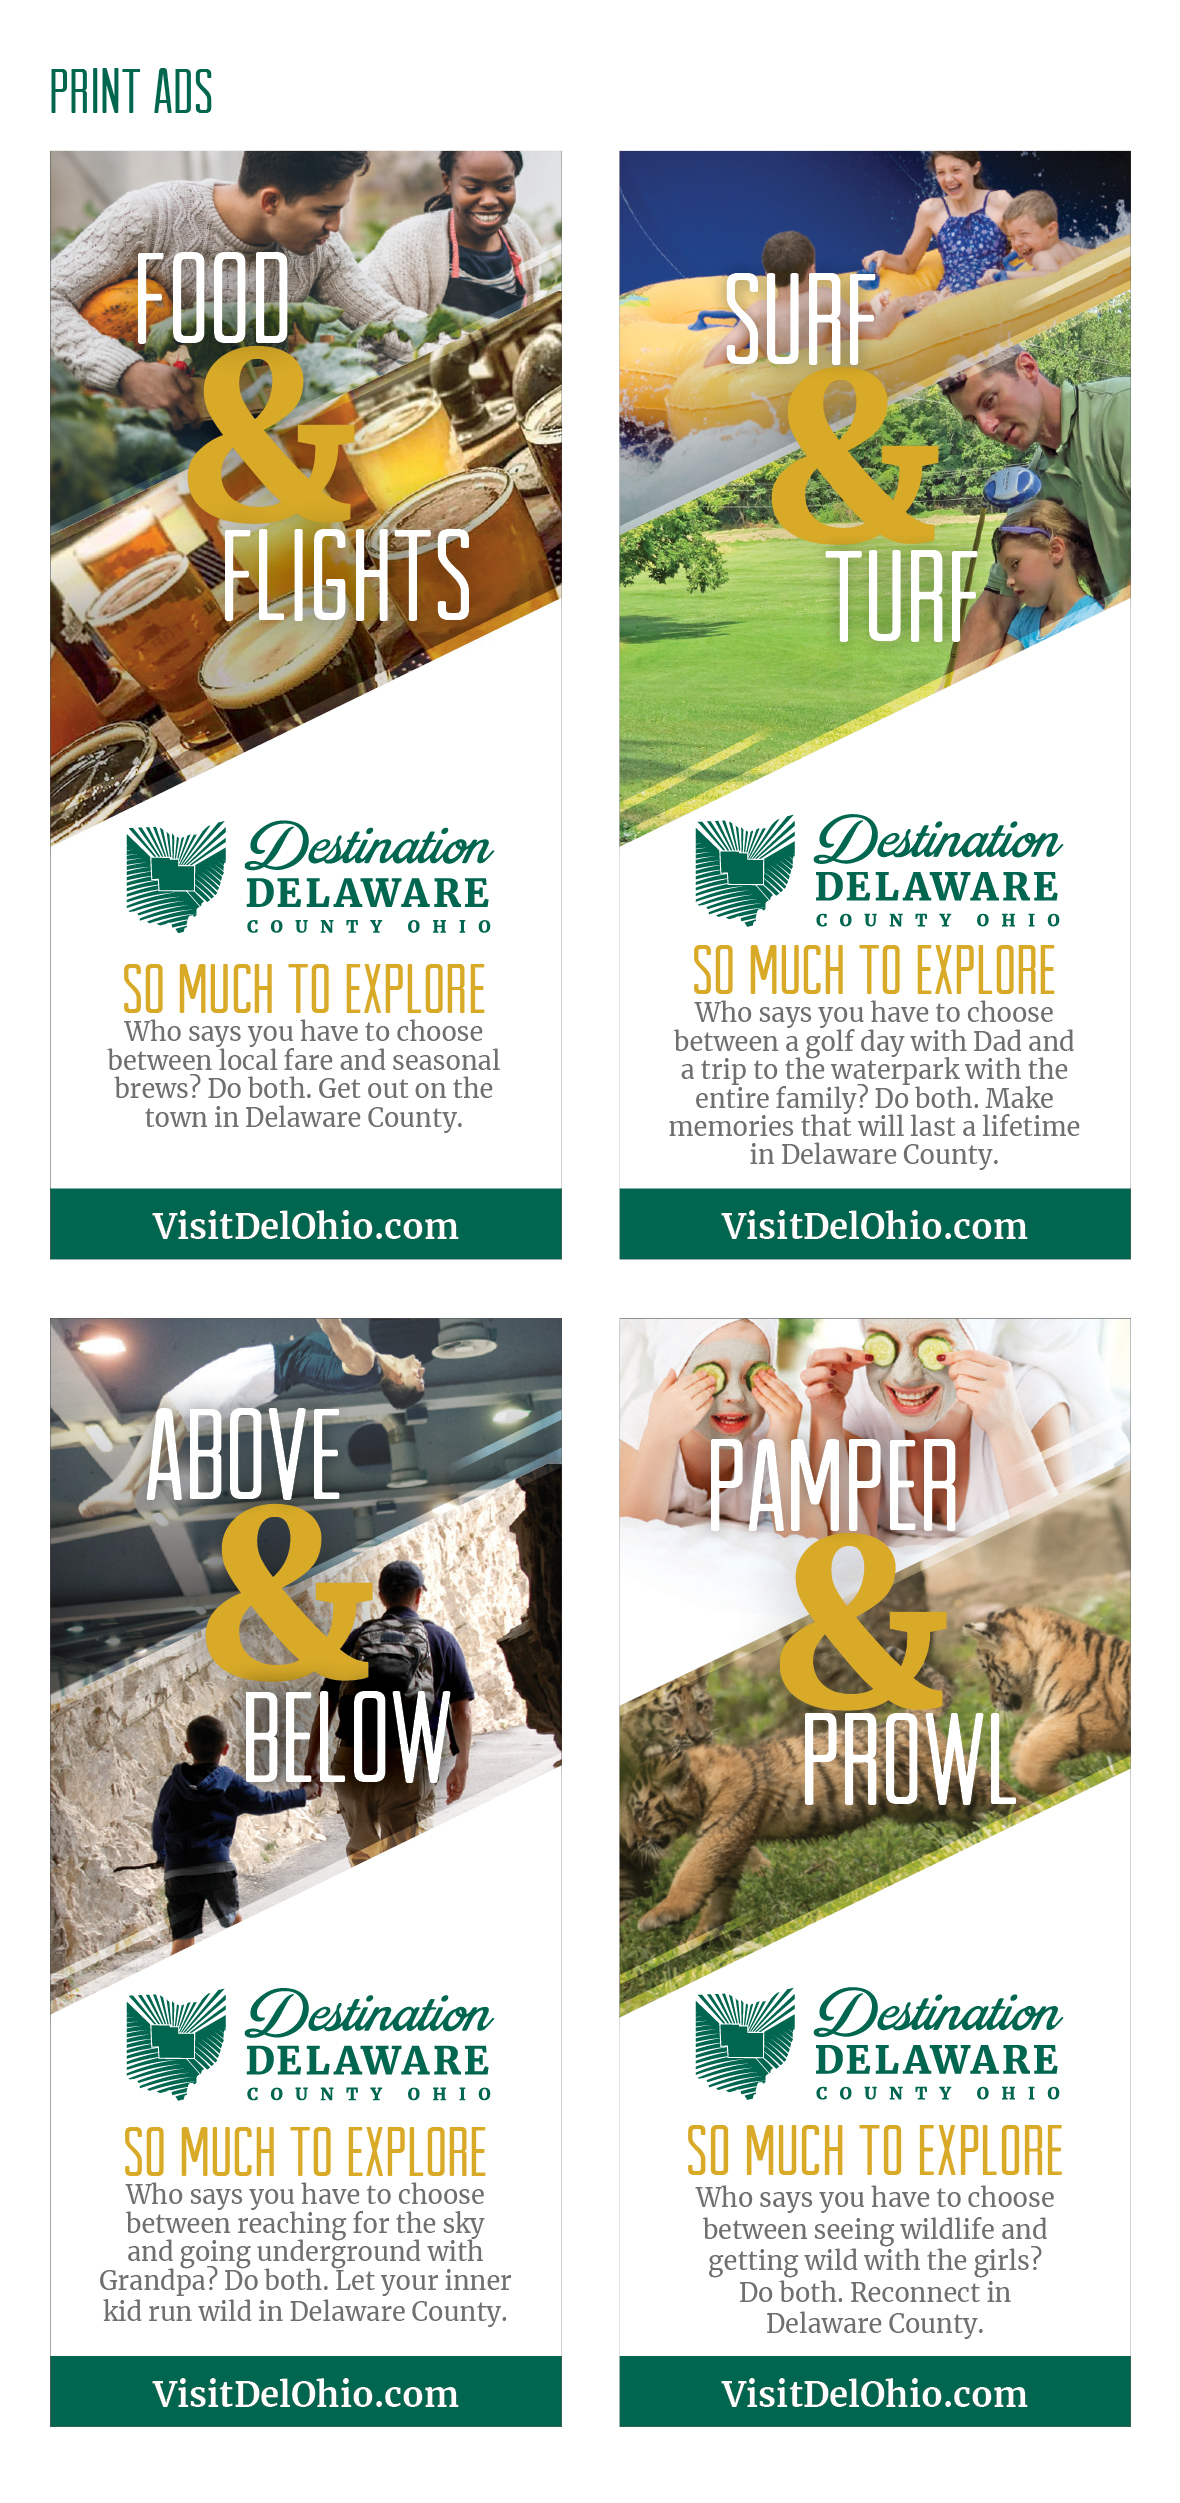 Origo Helps Launch The New Tourism Campaign For Delaware County | Branding, ONLY infoTech